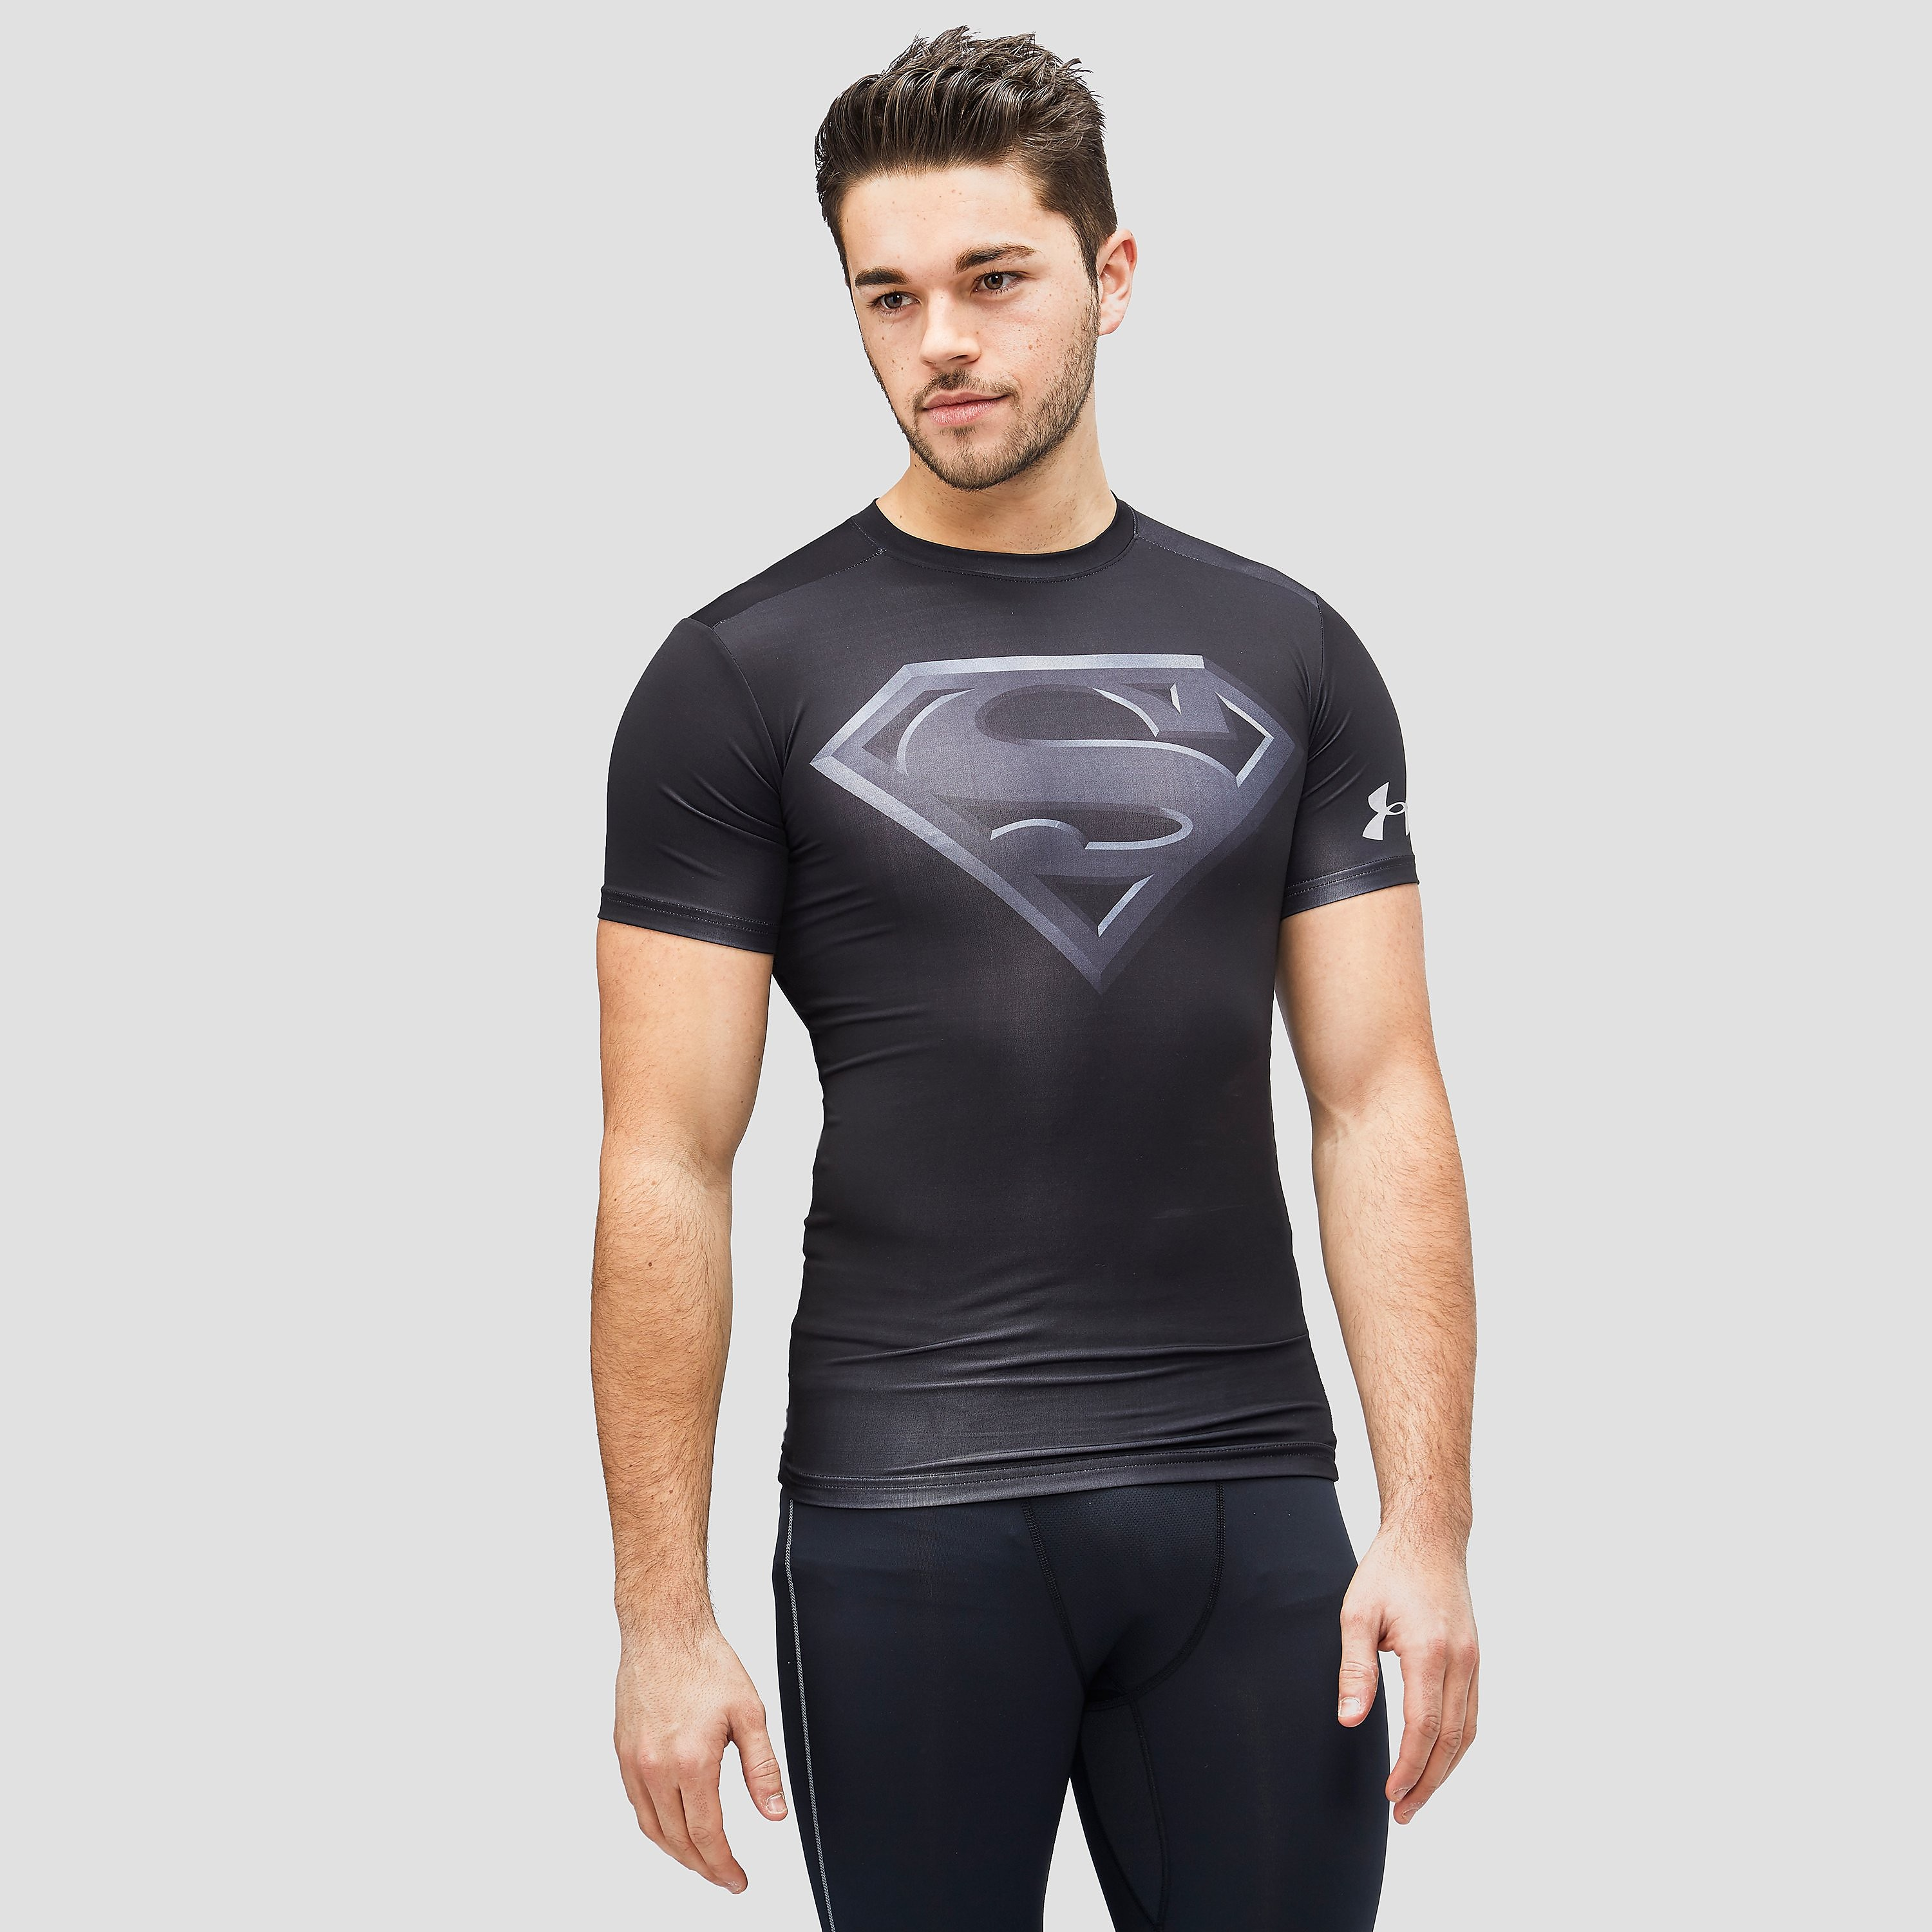 Under Armour Alter Ego Compression Short Sleeve Men's T-shirt